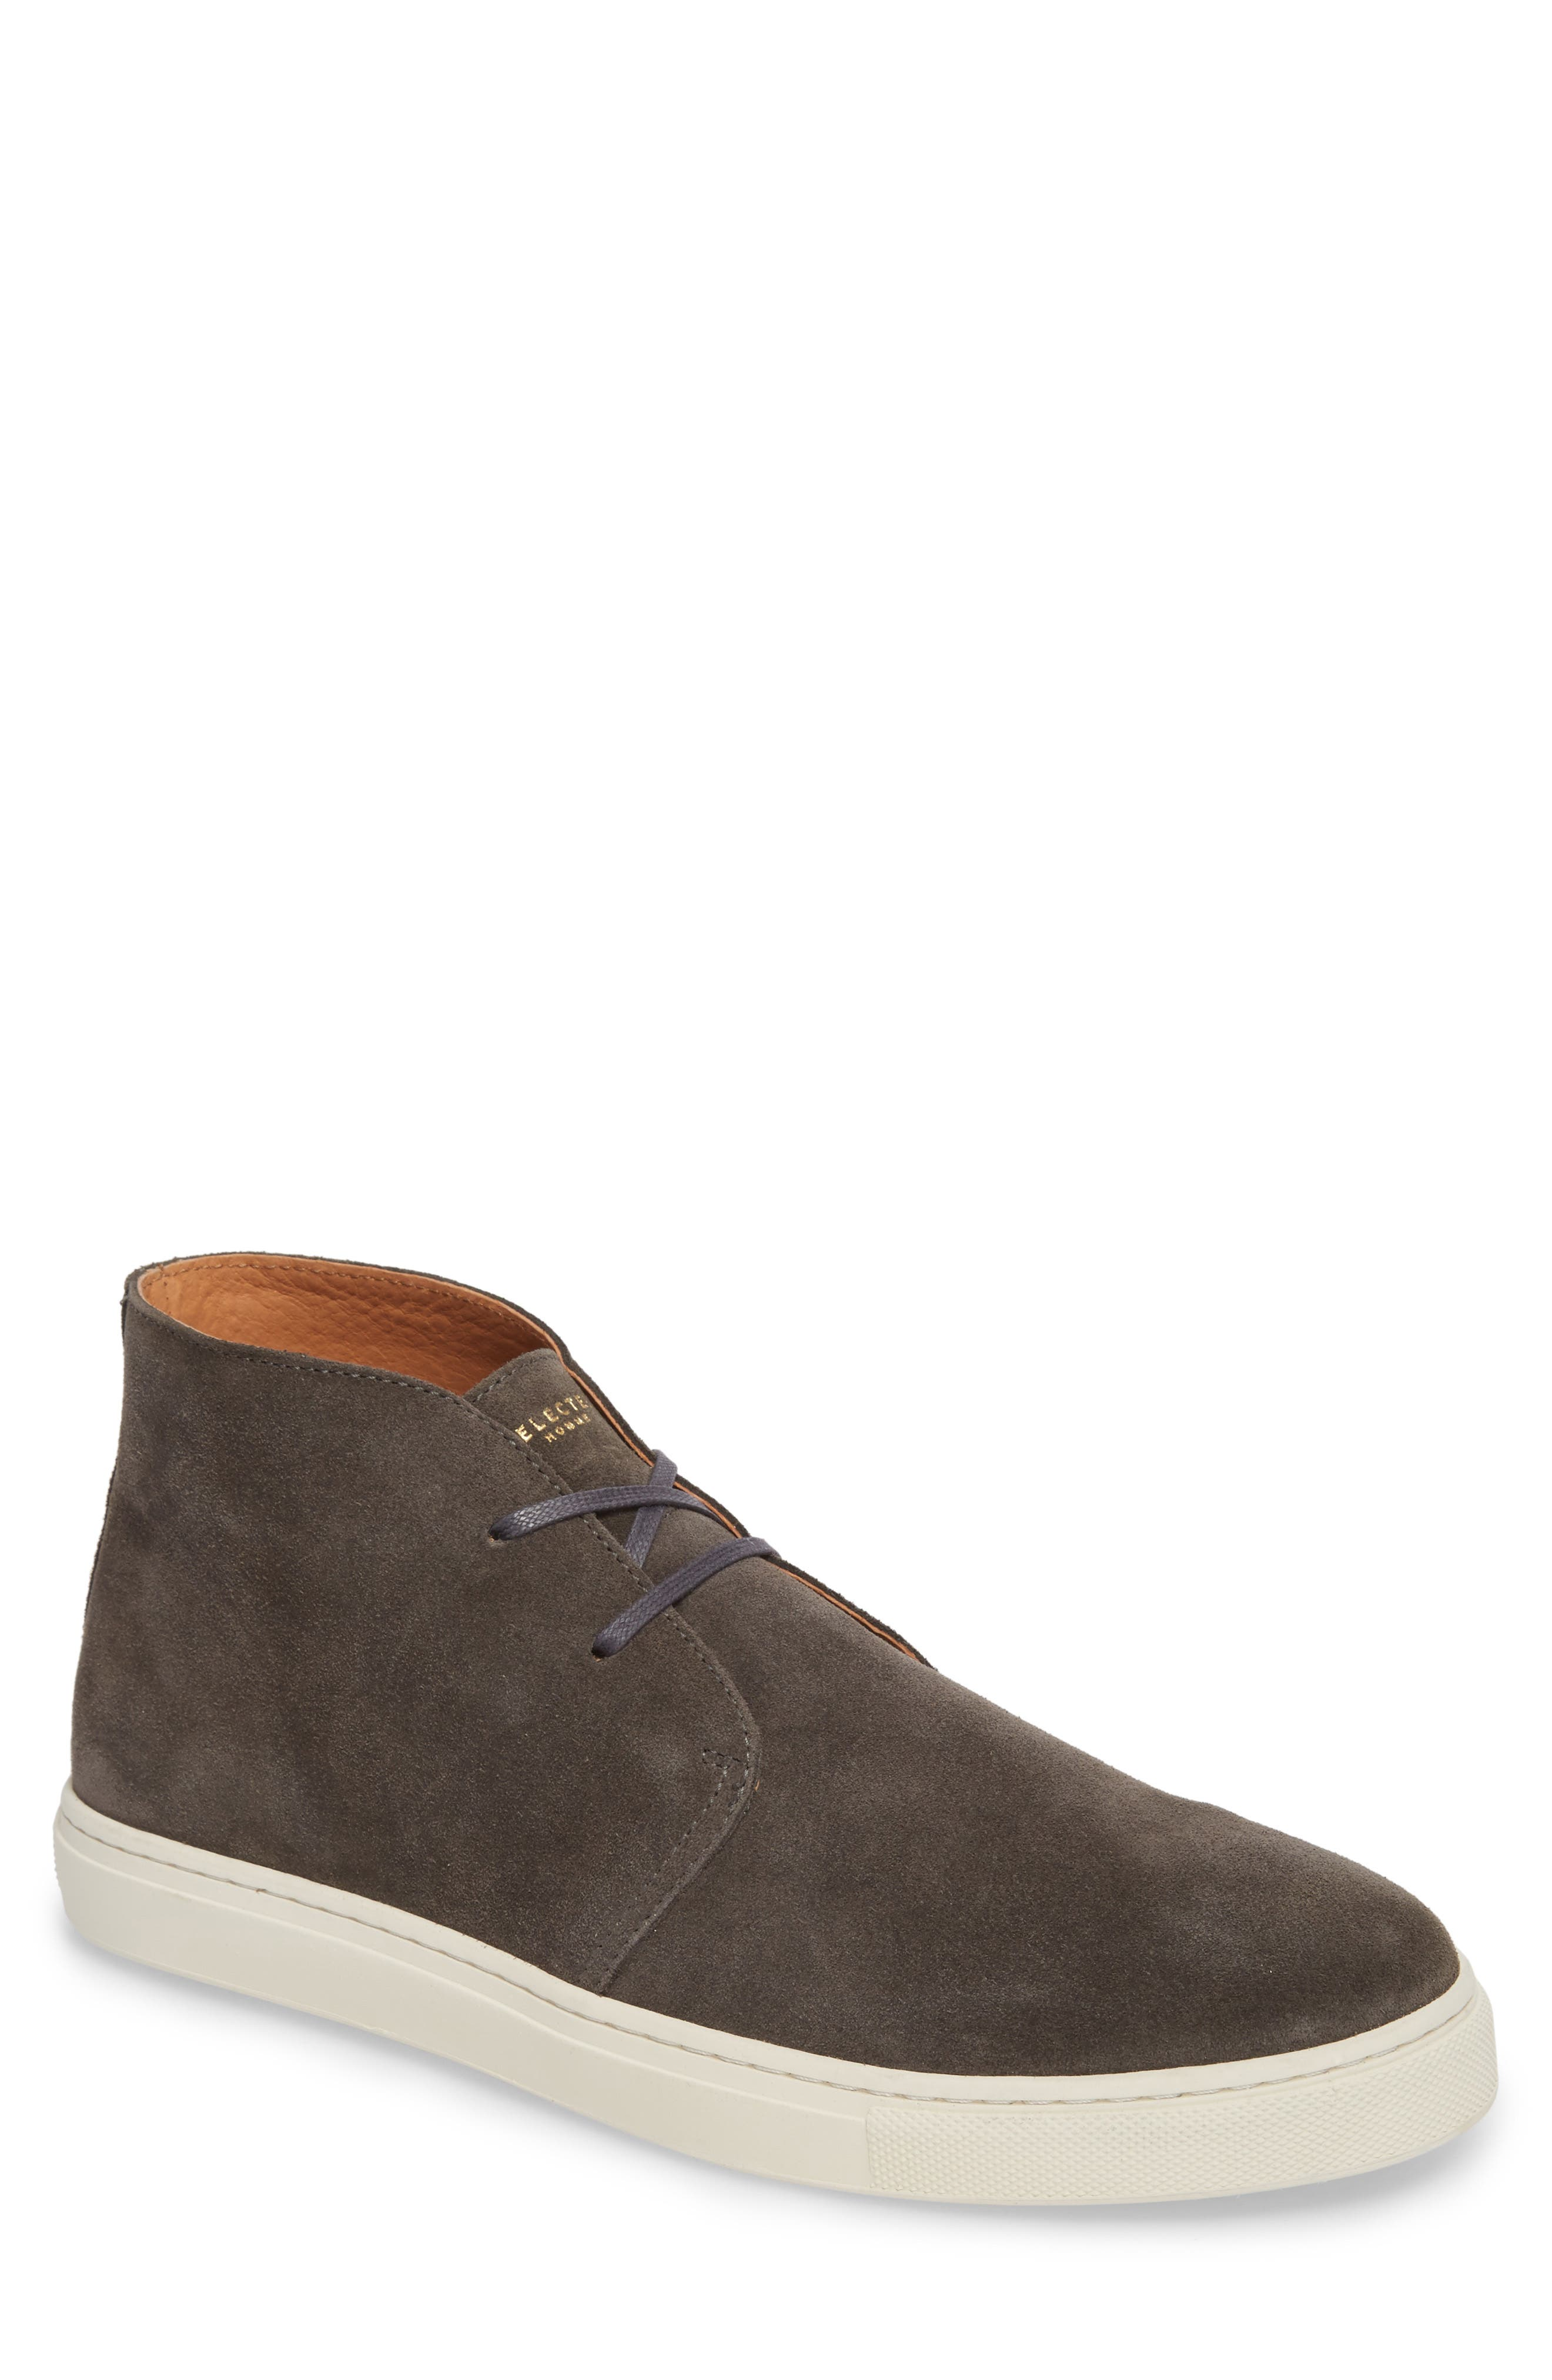 Selected Homme Dempsey Chukka Sneaker - Grey